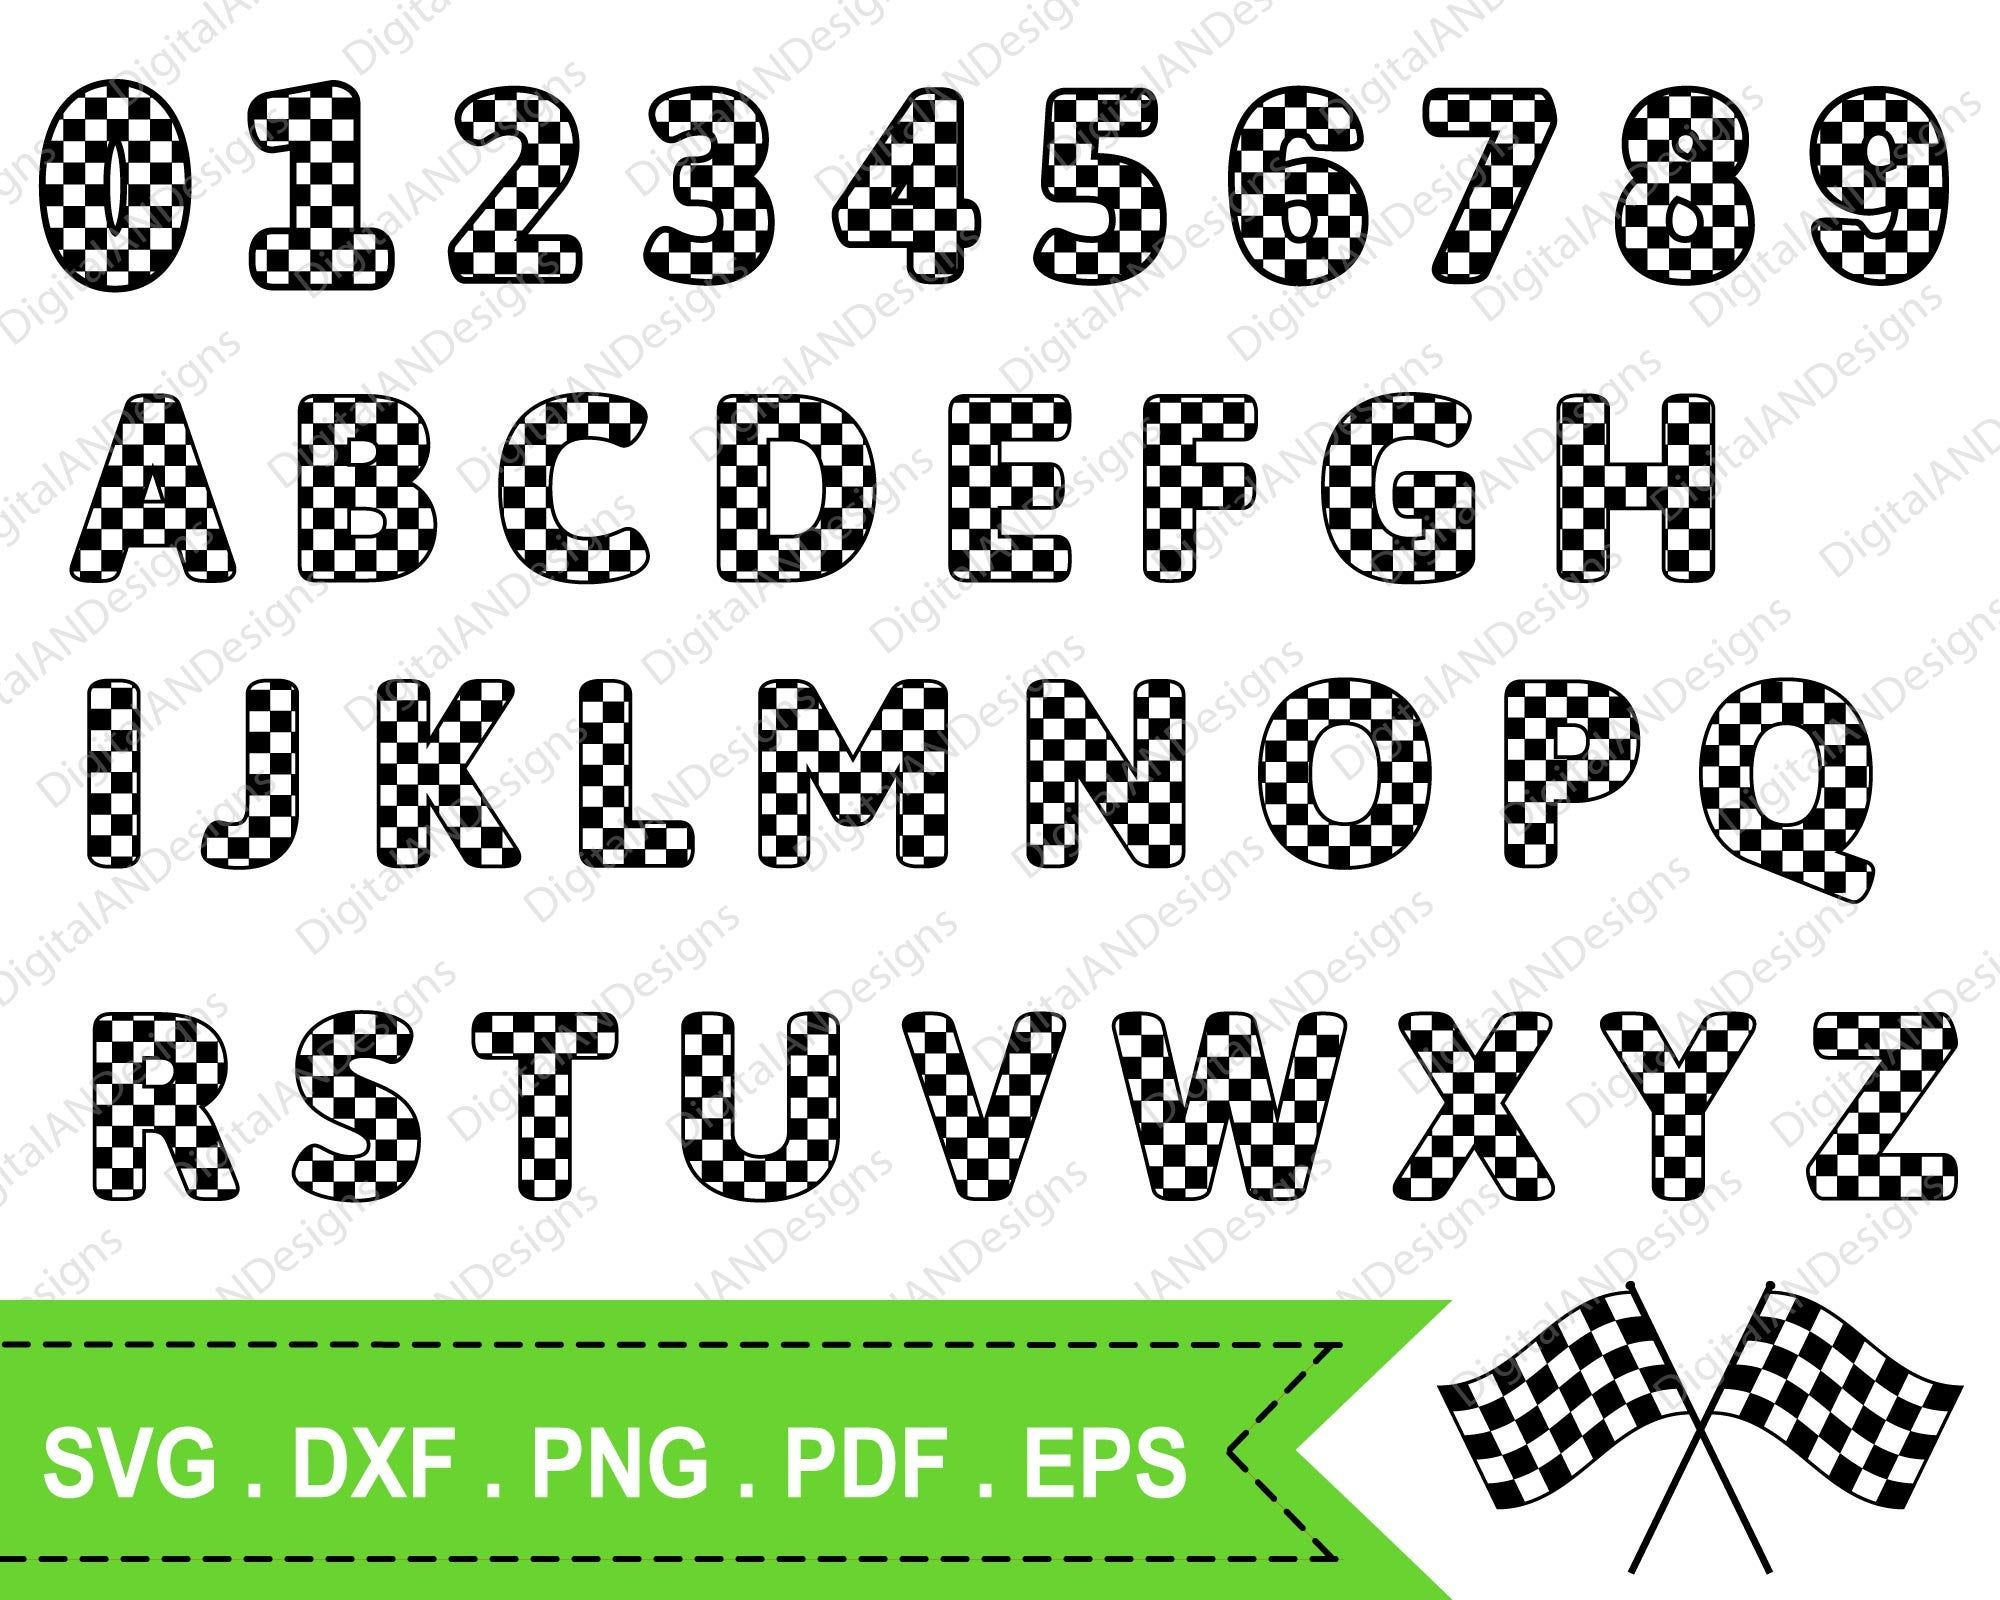 Pin on Digital Clipart SVG Cutting File